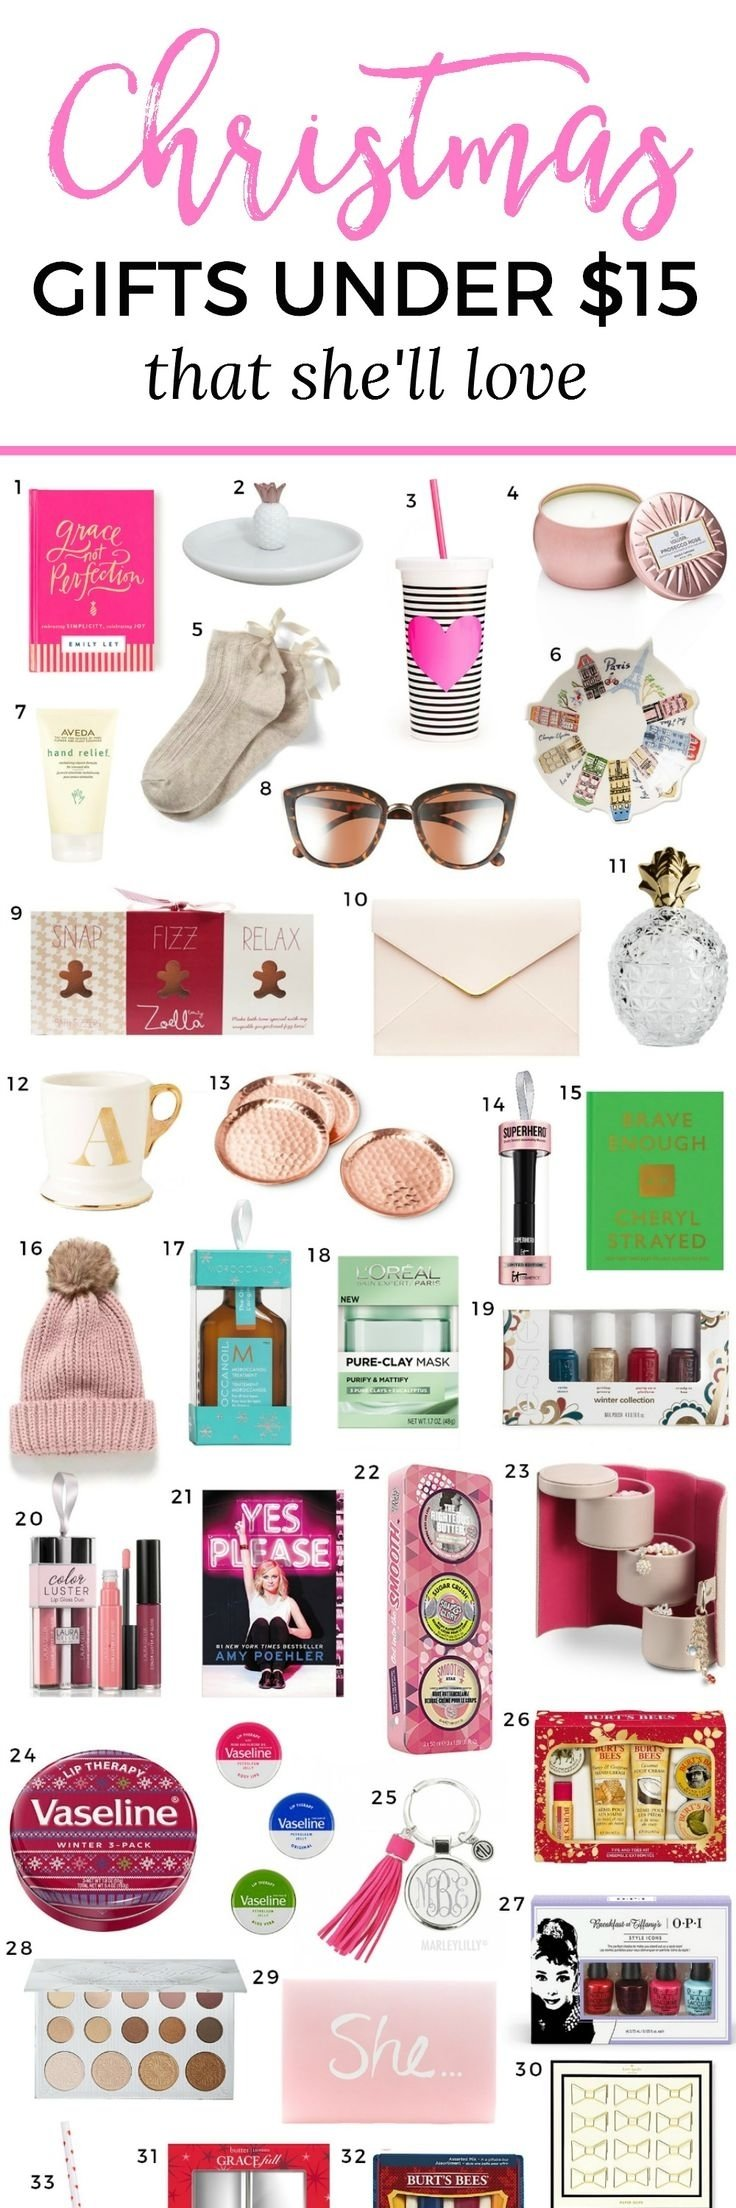 10 Fashionable Christmas Gift Ideas For Young Women 654 best gift inspirations images on pinterest gift ideas 4 2020